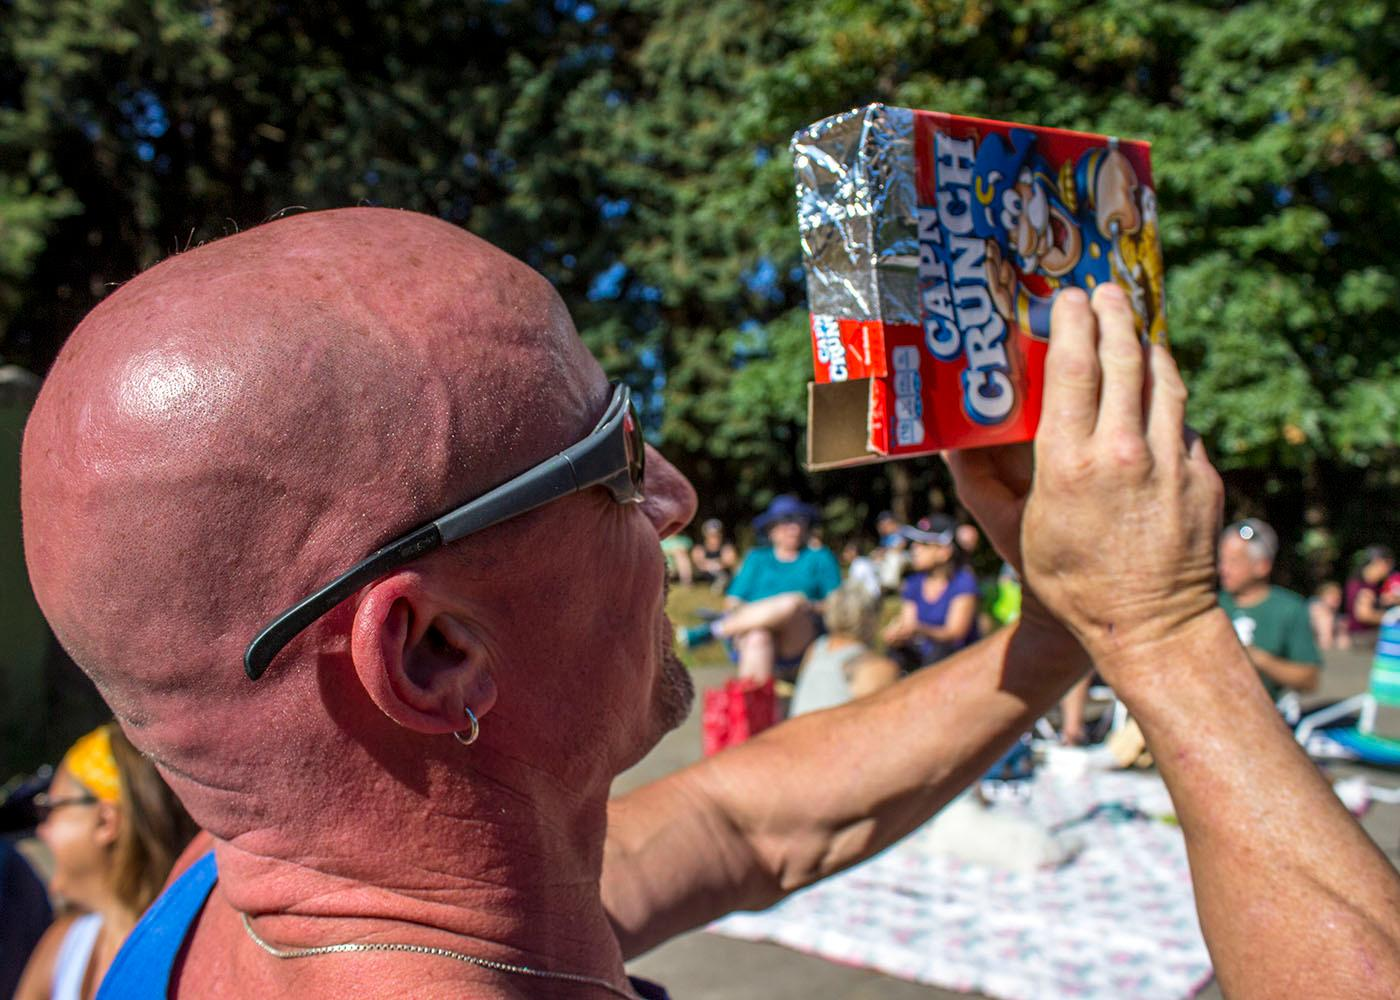 Although it wasn't in the path of totality, dozens of people gathered at Mt. Tabor in Portland, Ore. to watch the solar eclipse on August 21, 2017. In Portland, the moon covered 99.2 percent of the sun at 10:19 a.m. Spectators used glasses, filters and pinhole projectors to view the eclipse. Photo by Amanda Butt